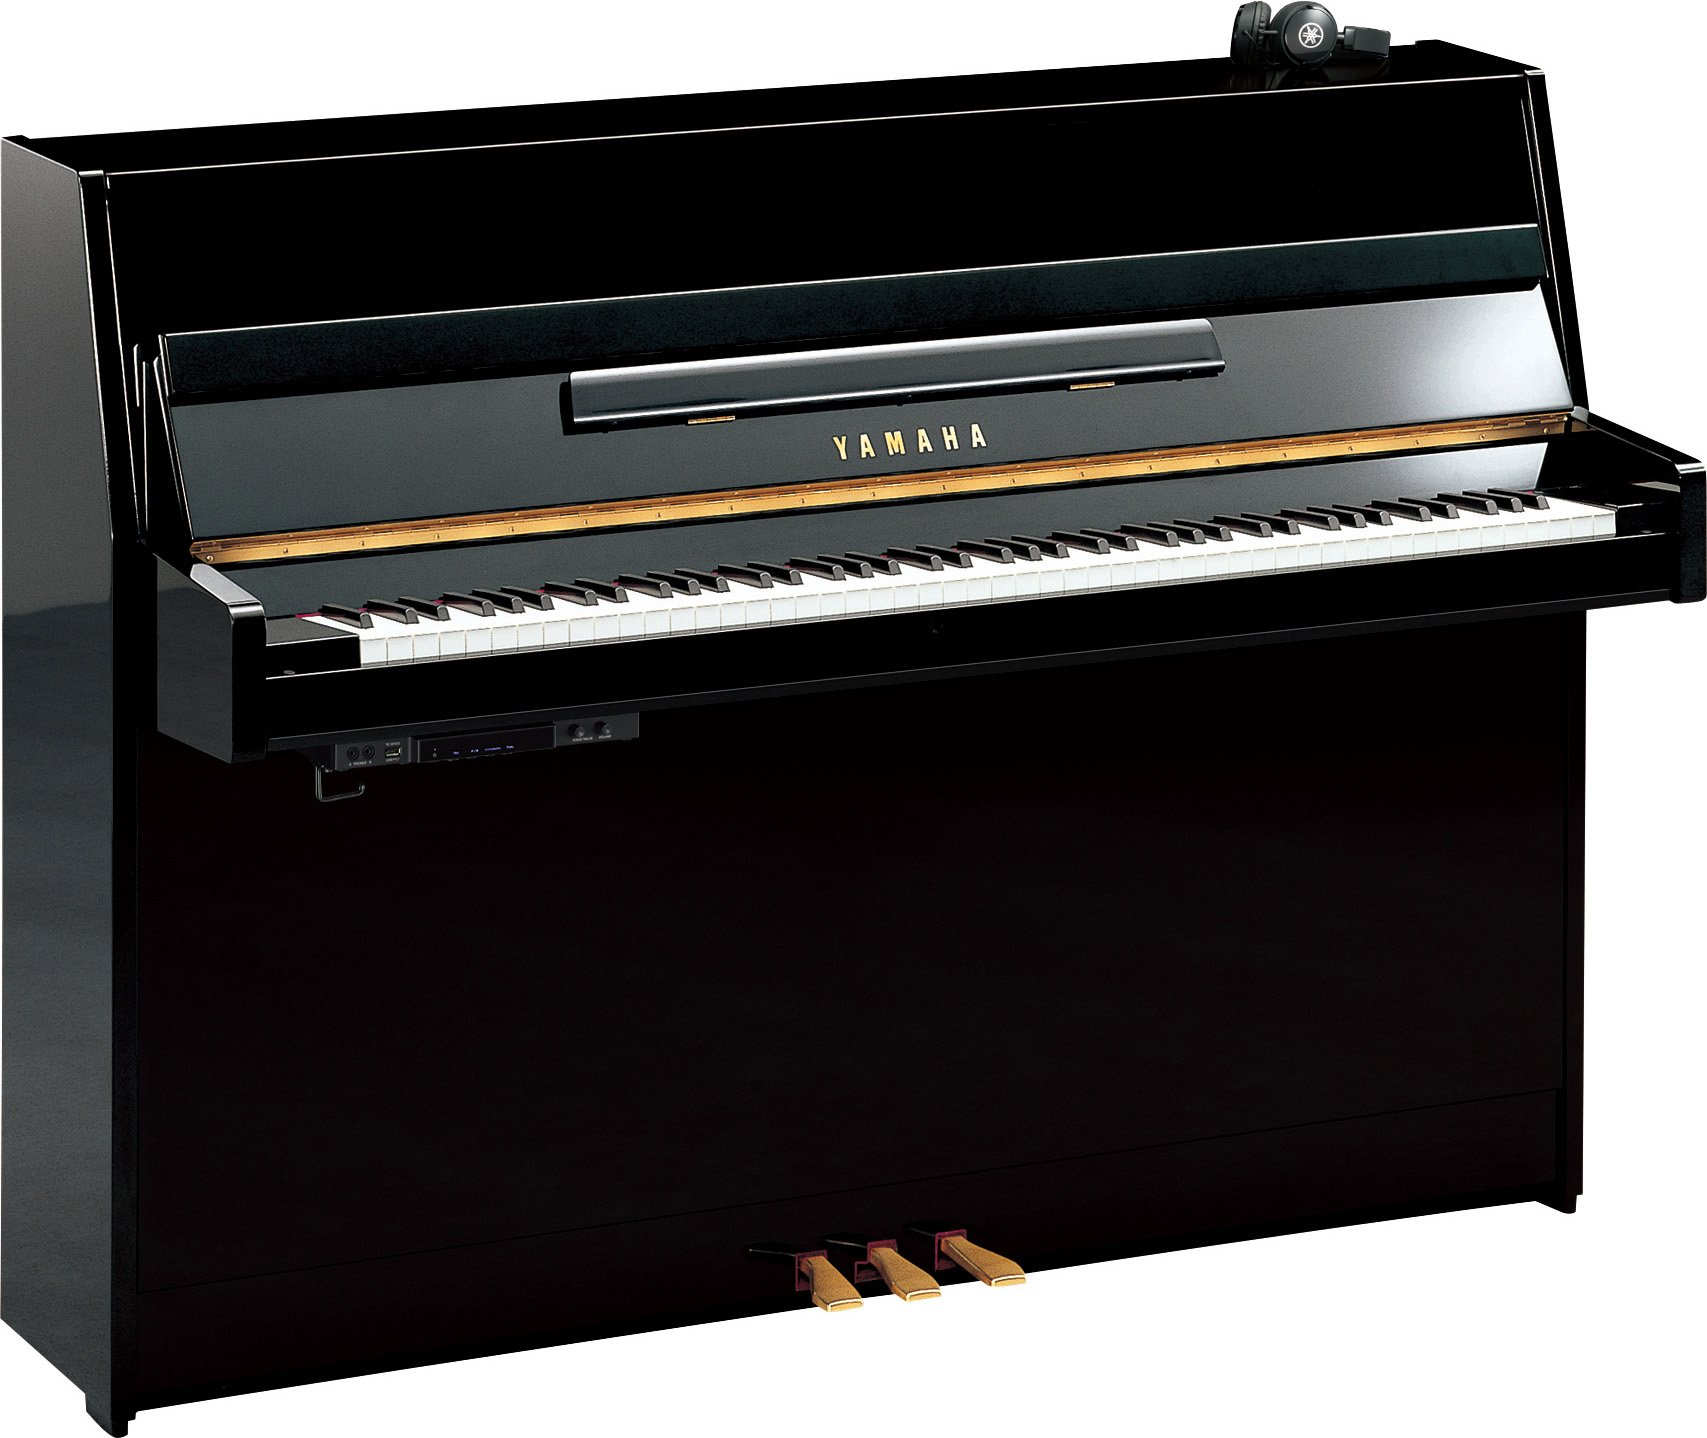 silent piano sc2 overview silent piano pianos. Black Bedroom Furniture Sets. Home Design Ideas